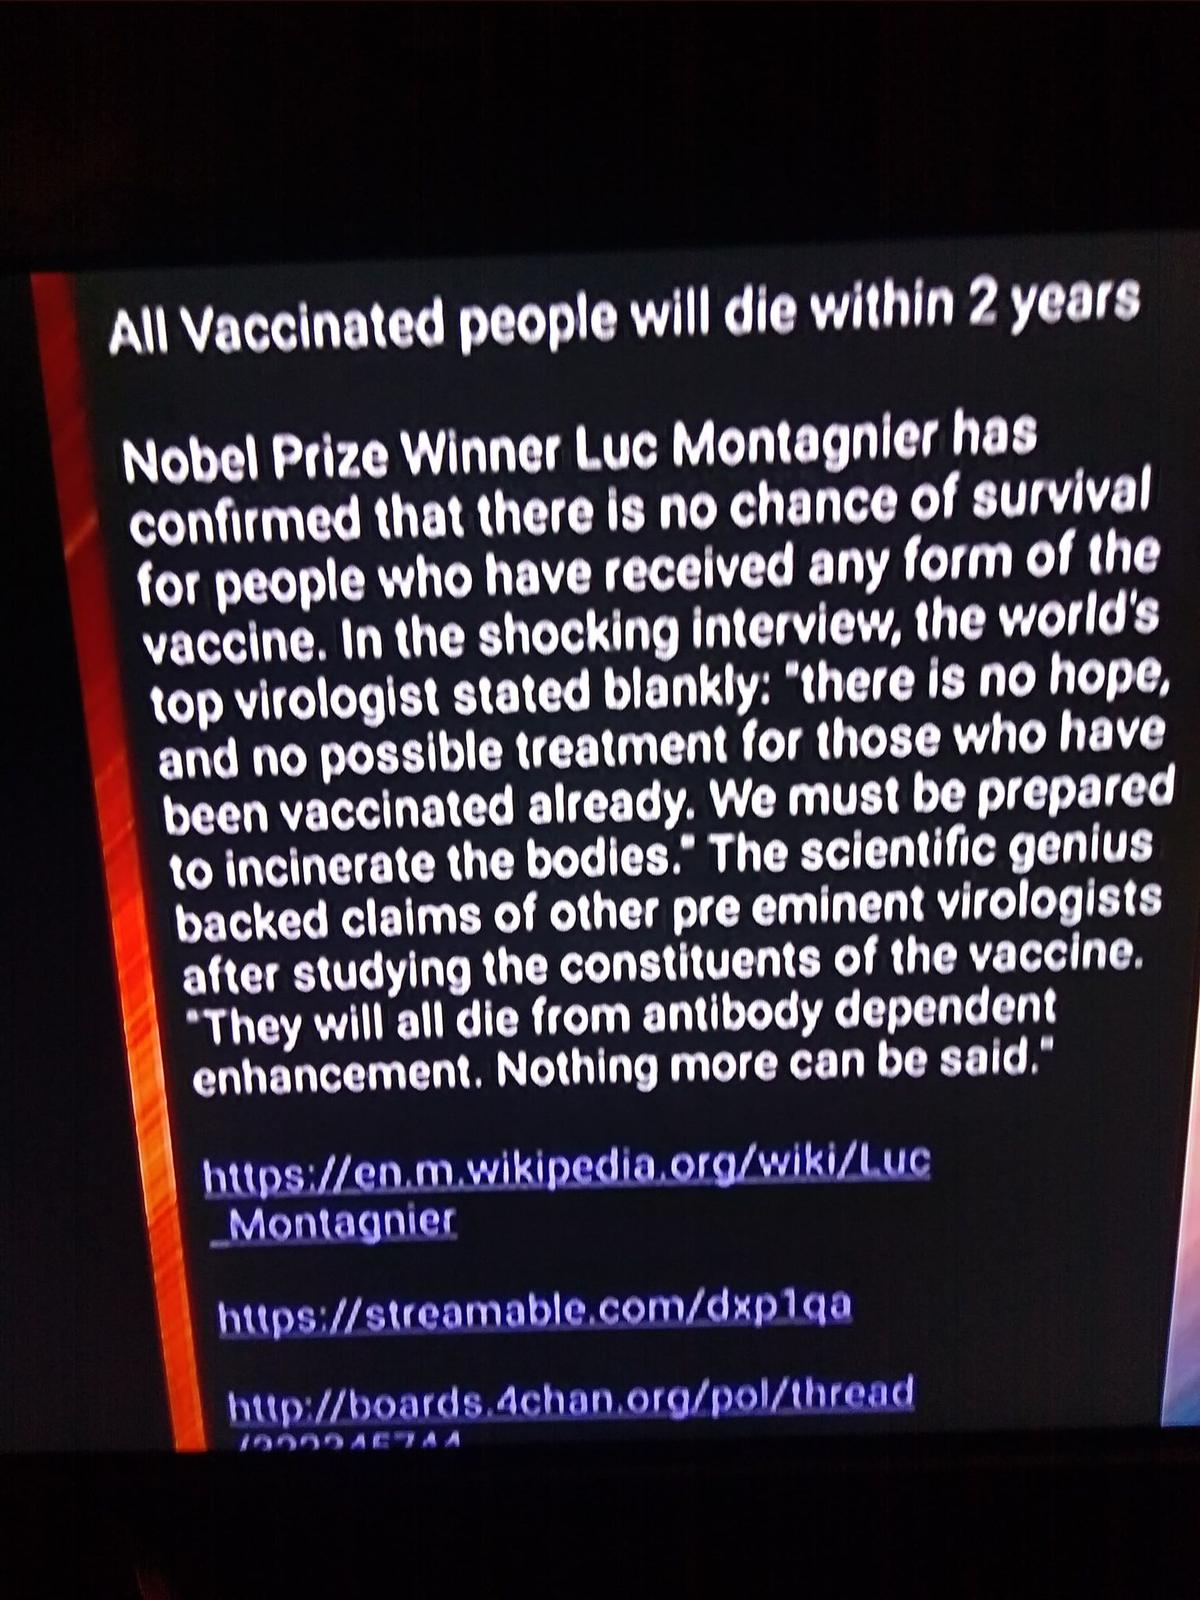 This another post by French virologist and Nobel Prize winner Luc Montagnier